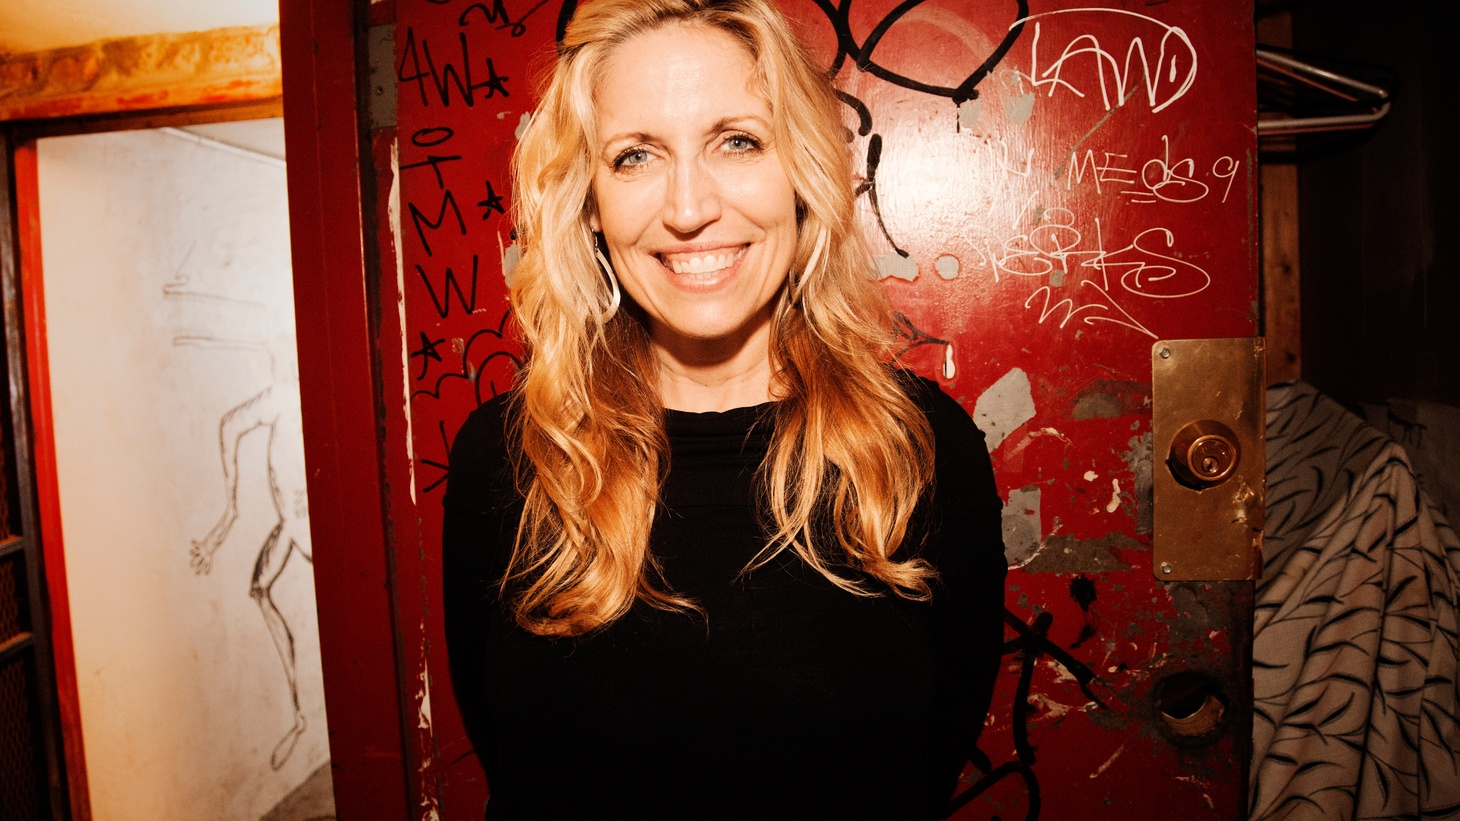 Laurie Kilmartin had some thoughts after Louis C.K. did a surprise set at a New York comedy club less than a year after revelations of his sexual misconduct.